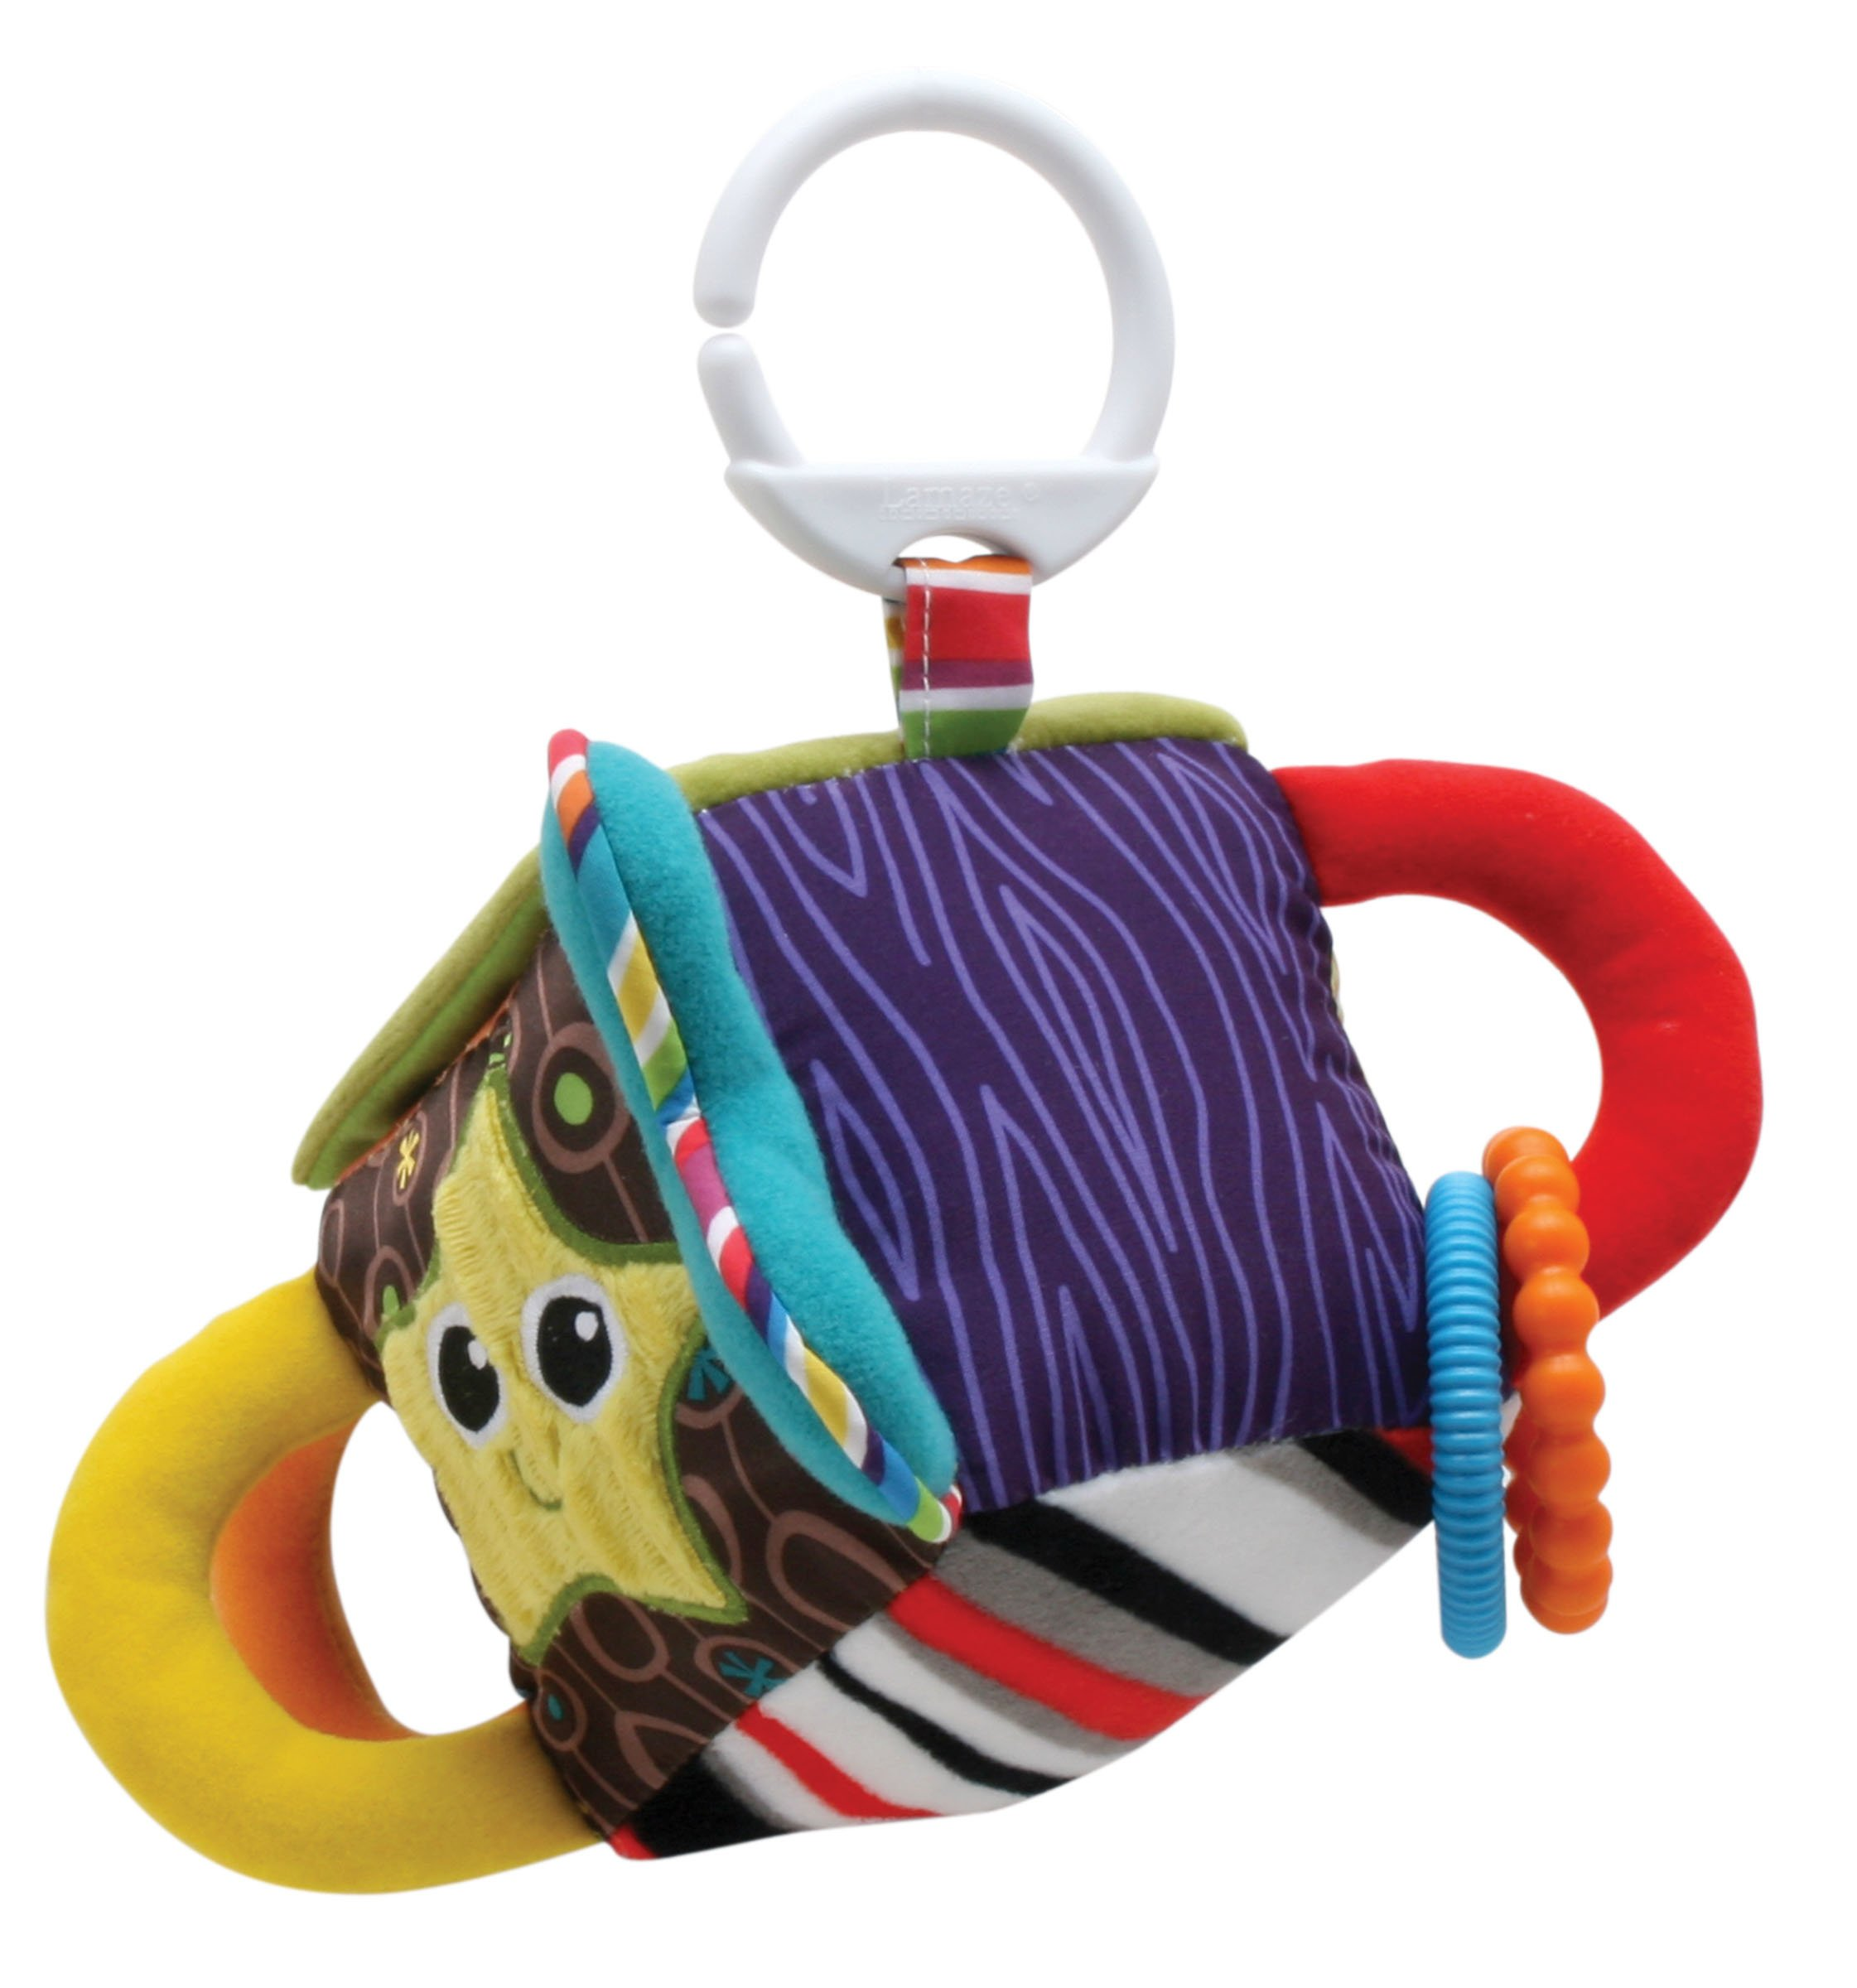 Lamaze Toys Cube Clutch ToyRefresh